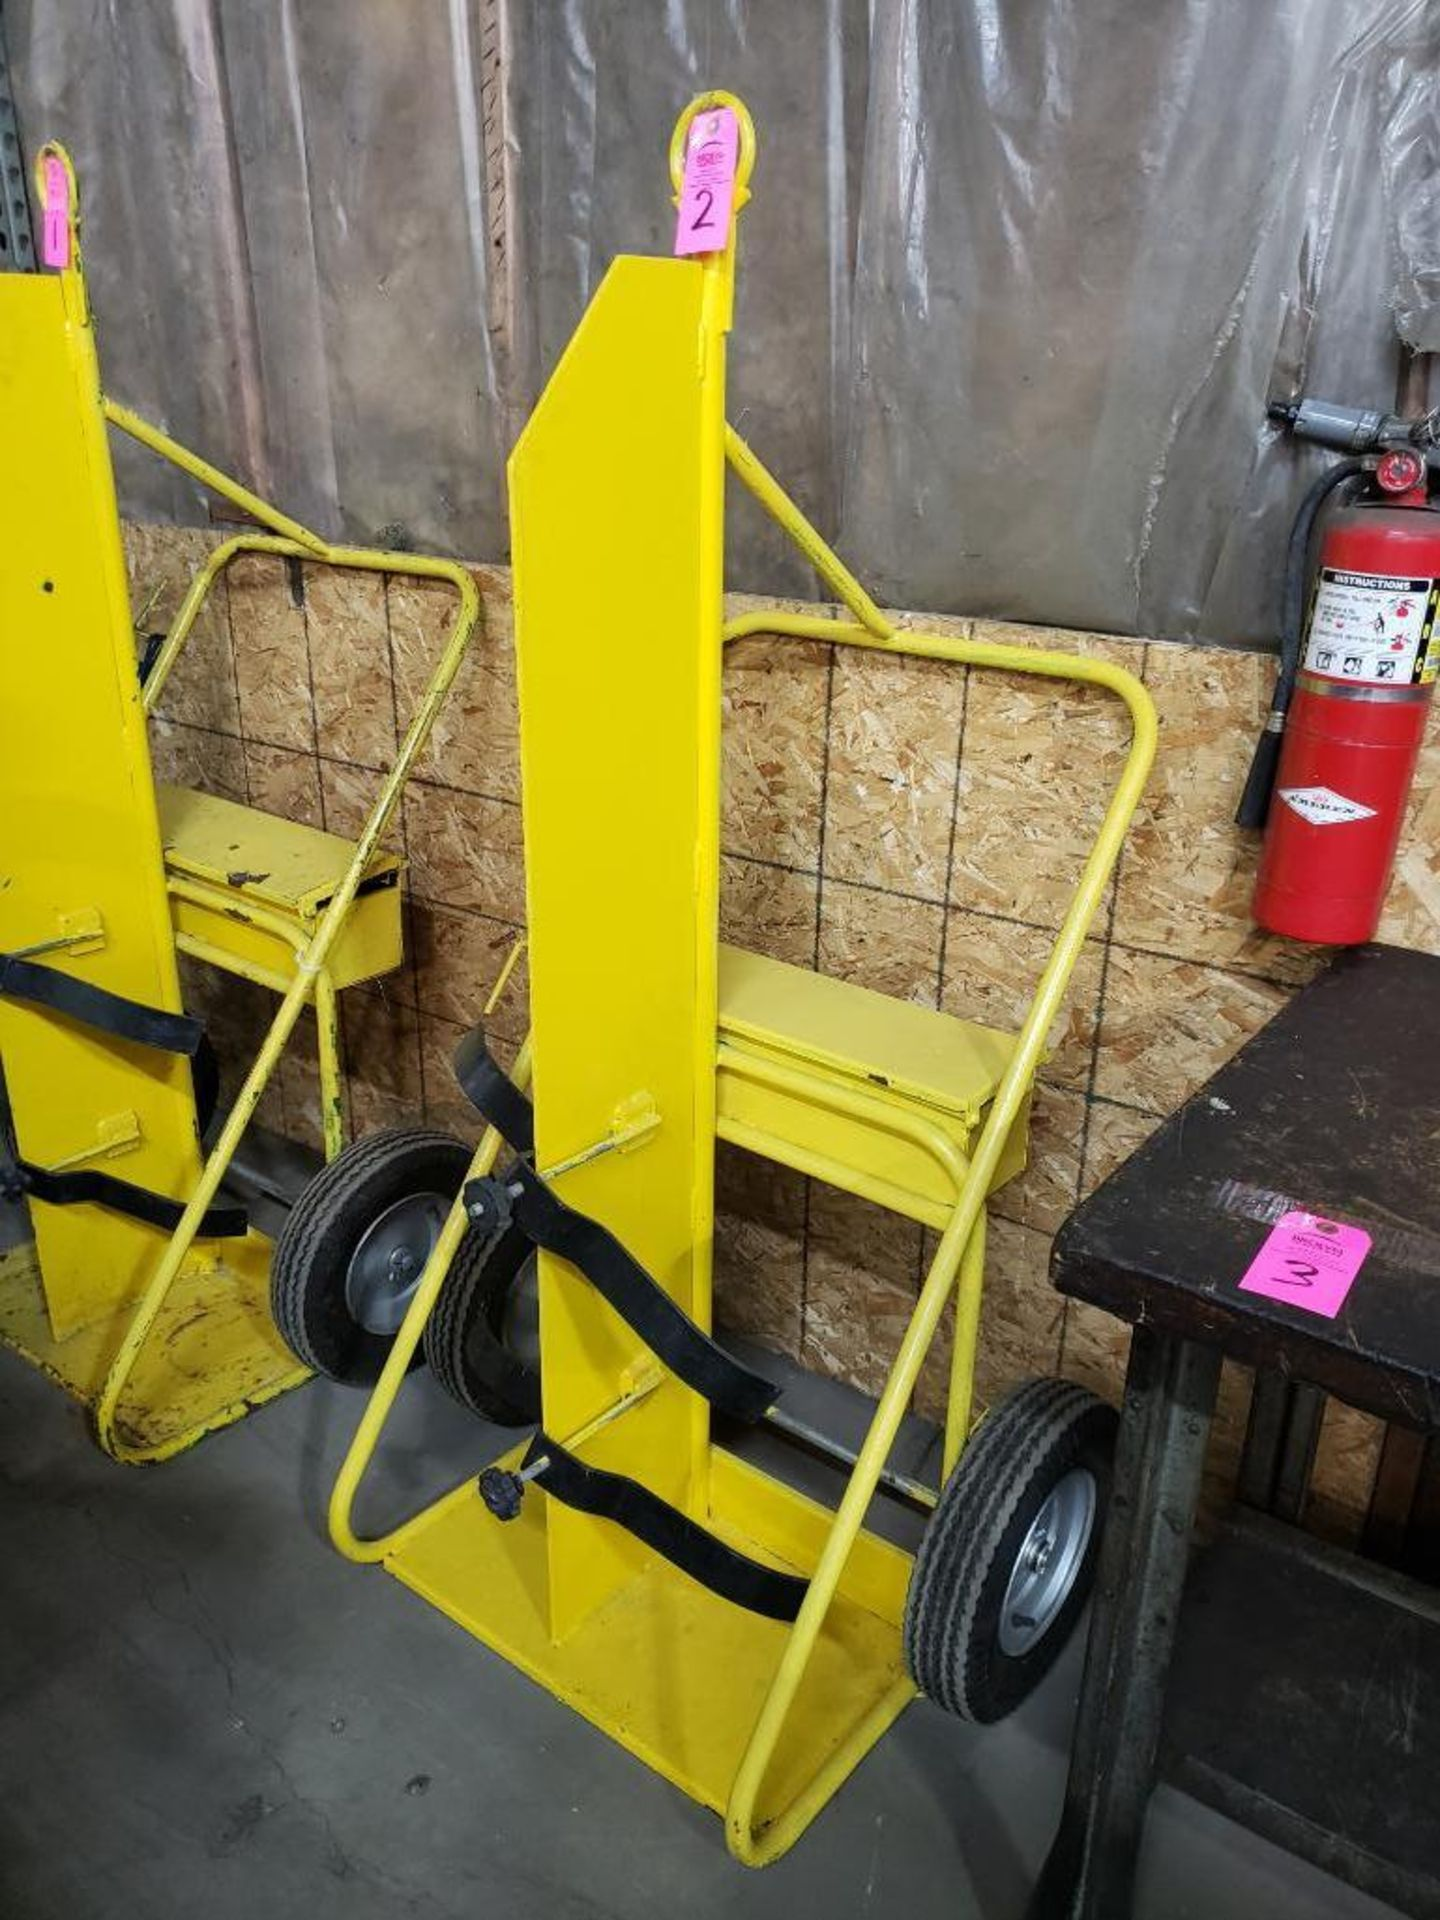 Lot 2 - Heavy duty factory torch cart with pneumatic tires.